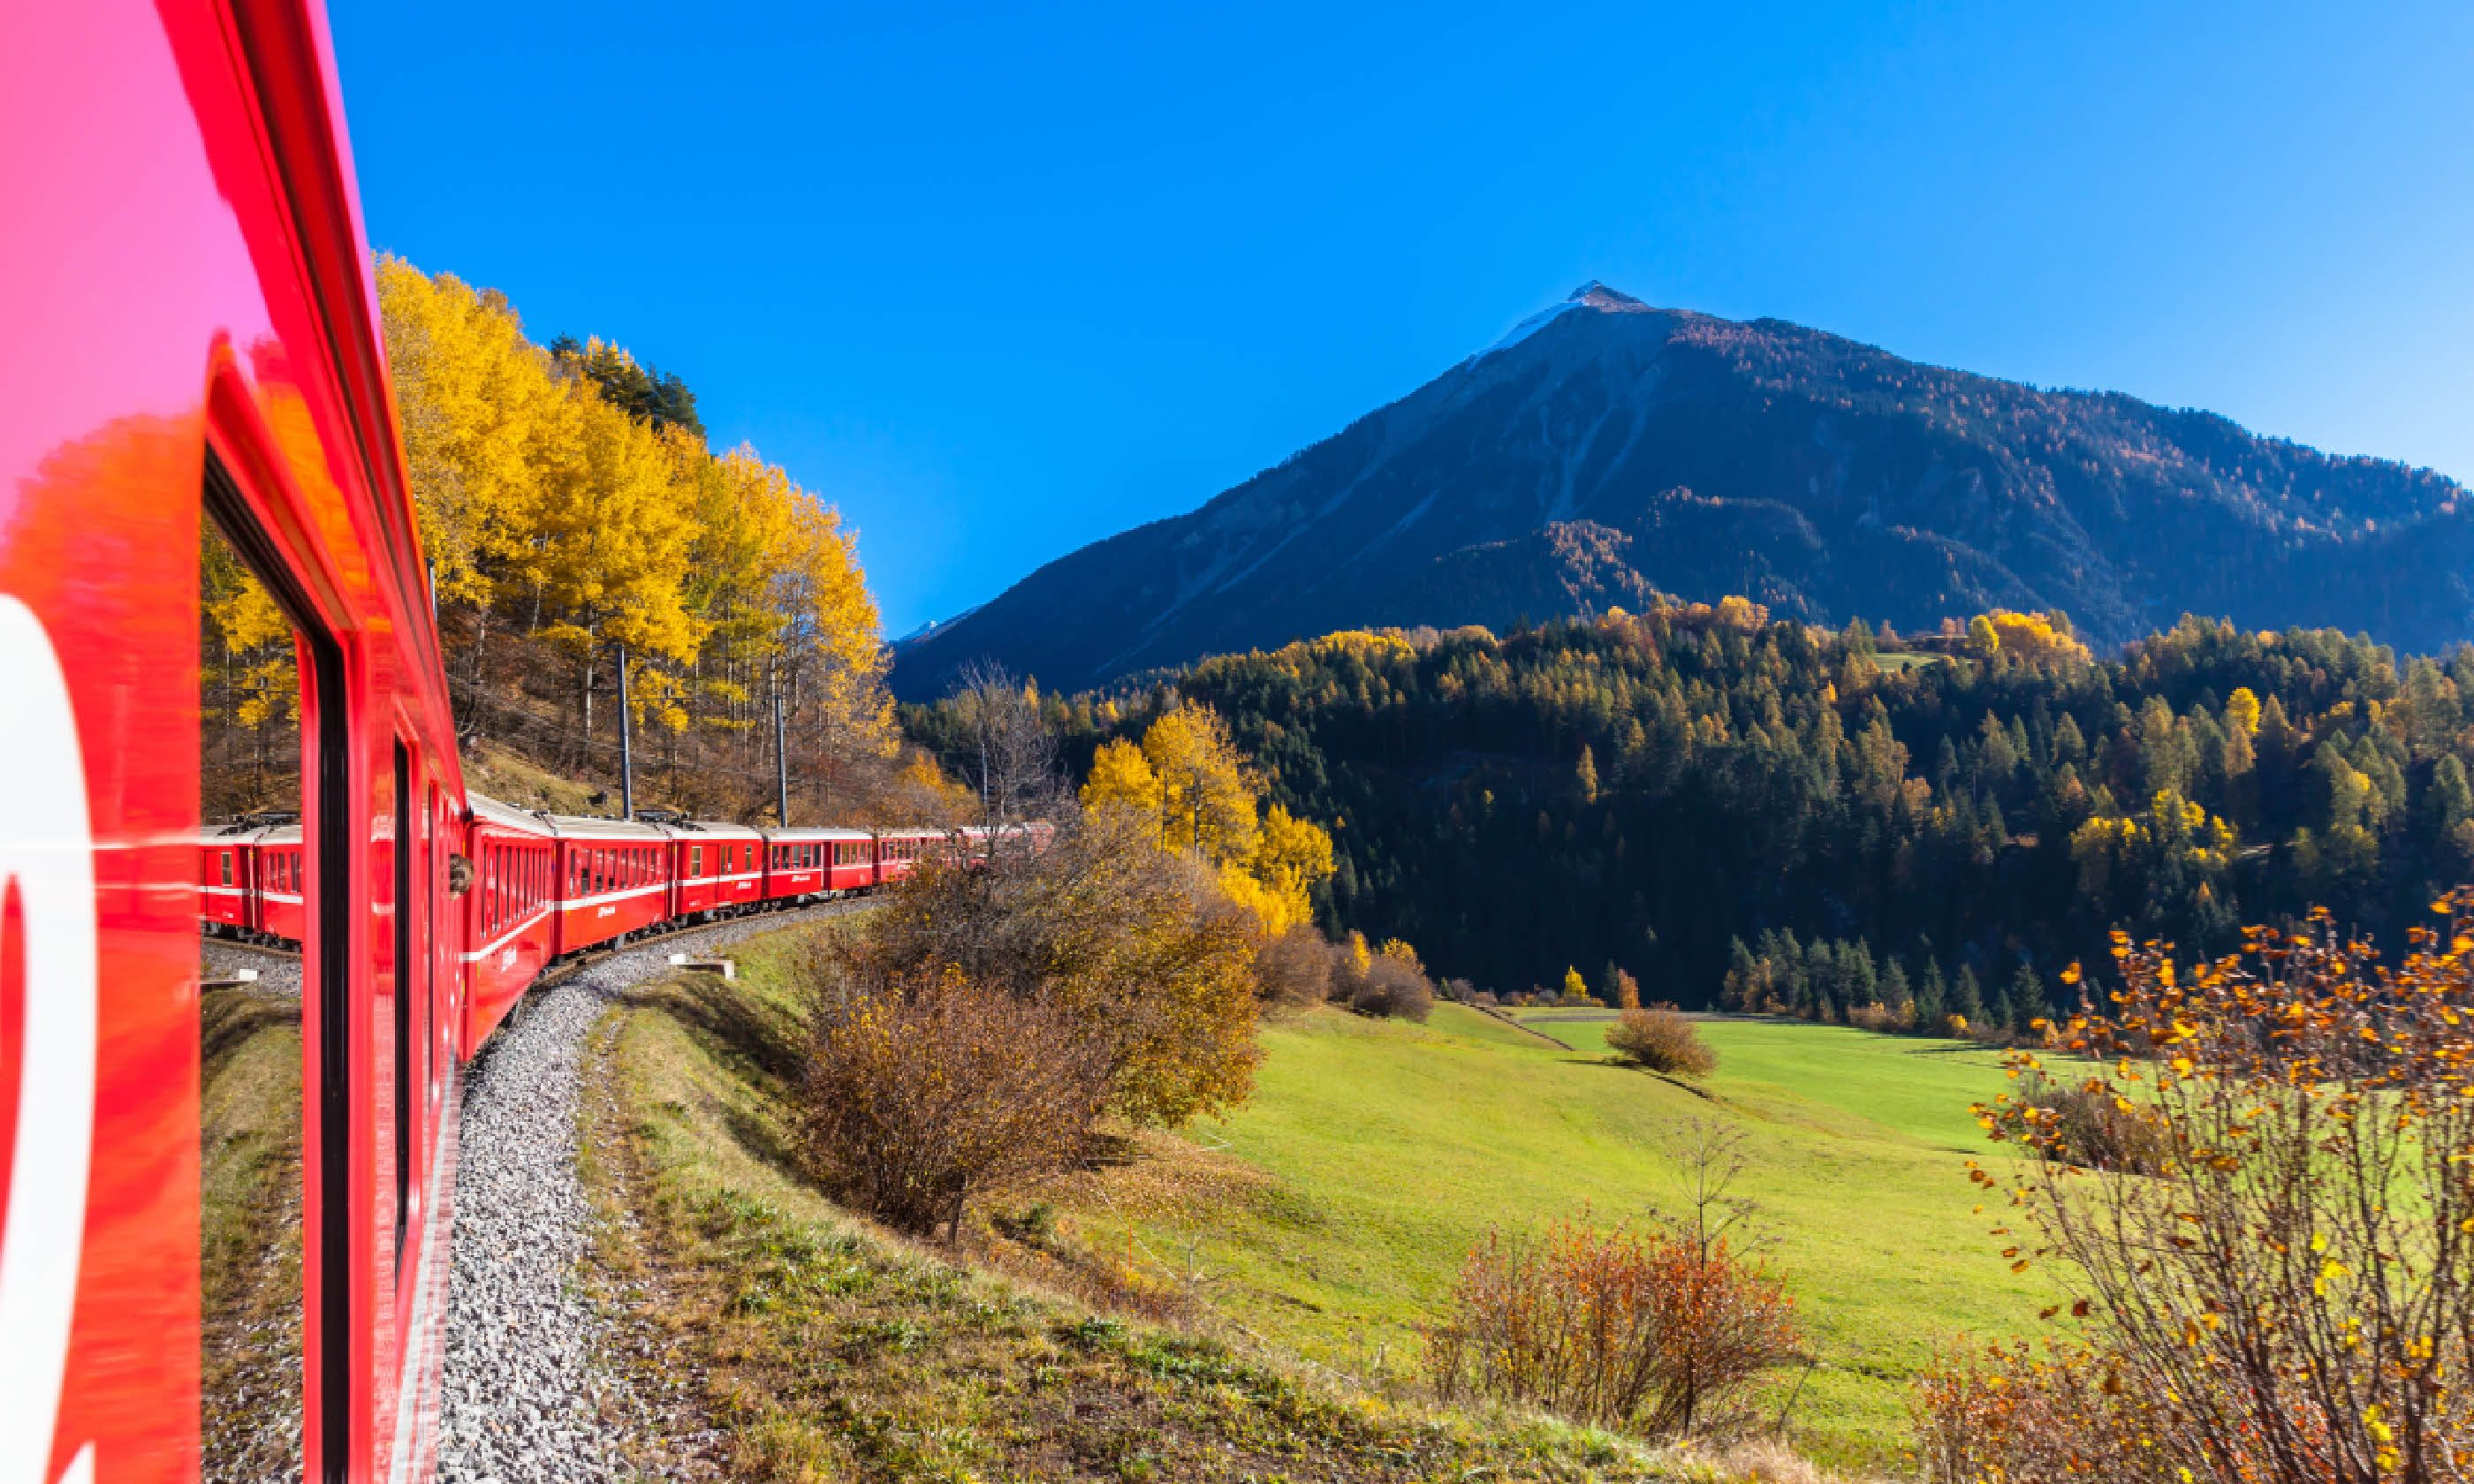 Glacier Express, Switzerland (Shutterstock)